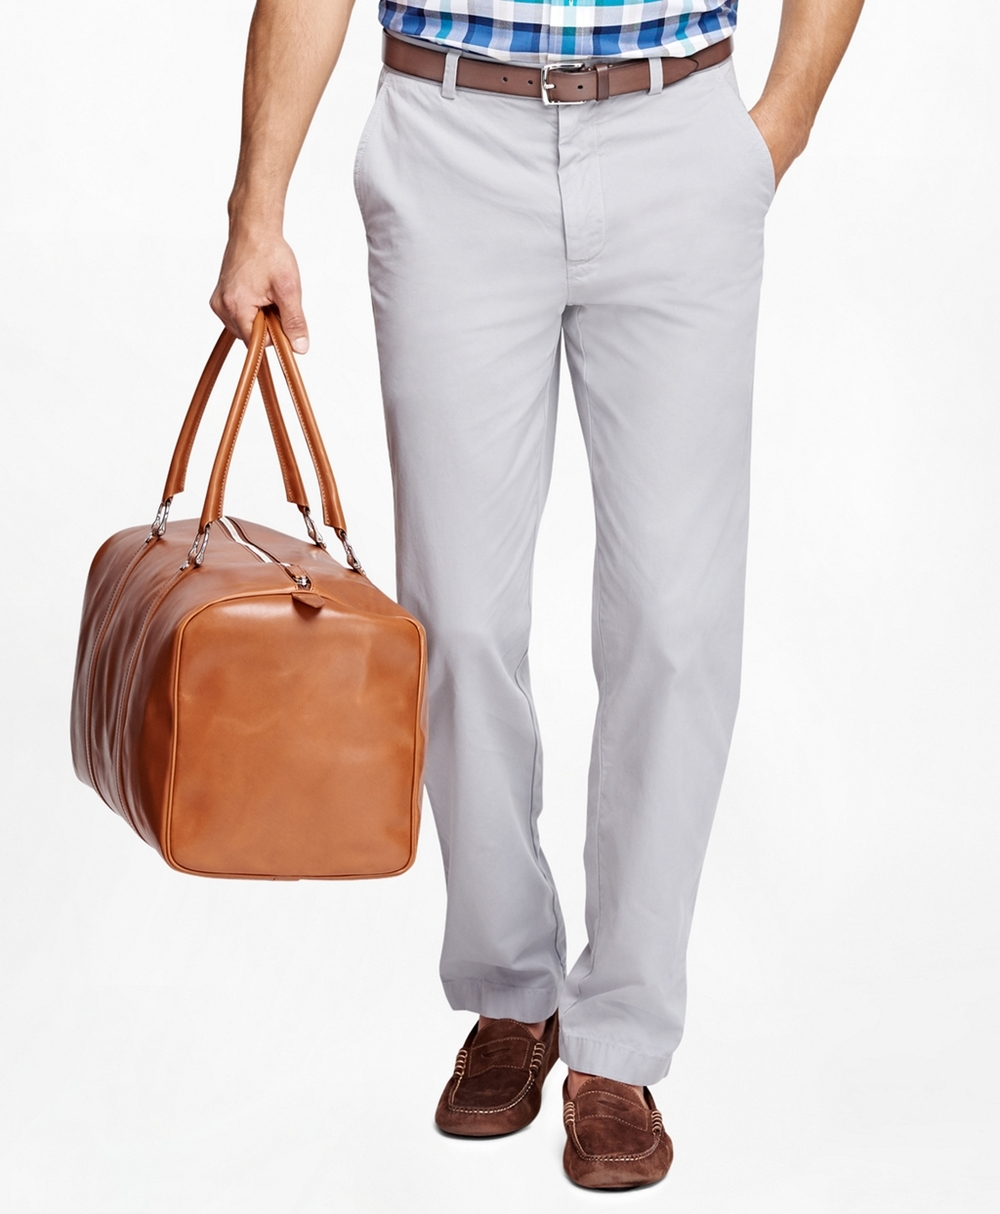 Brooks Brothers Clark Fit Garment-Dyed Chinos, $98.50